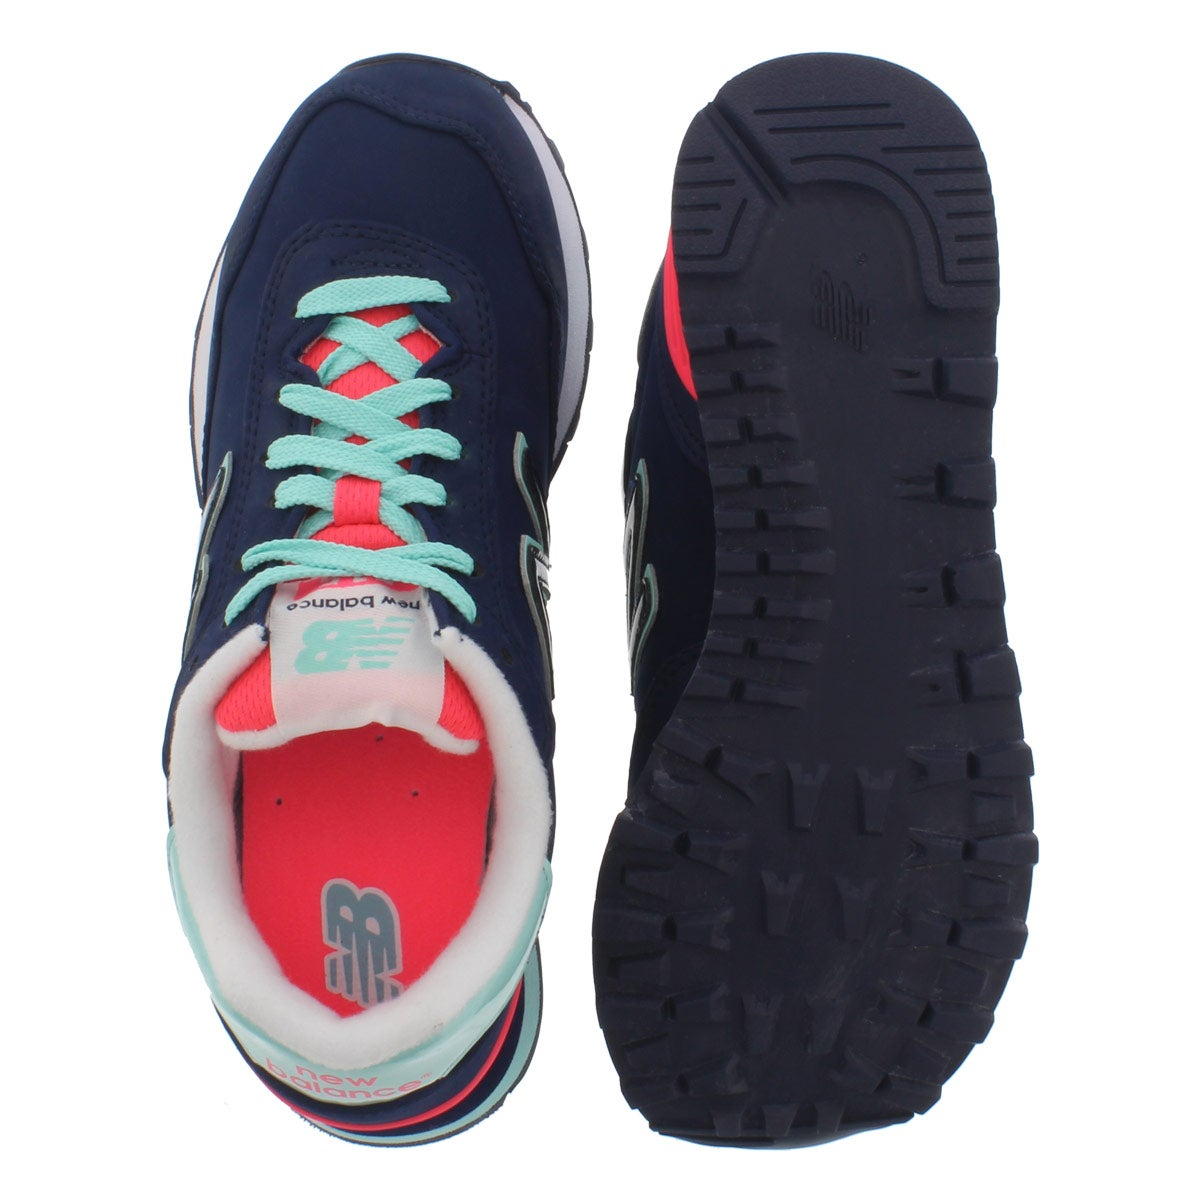 Lds 515 nvy/bright blue lace up sneaker